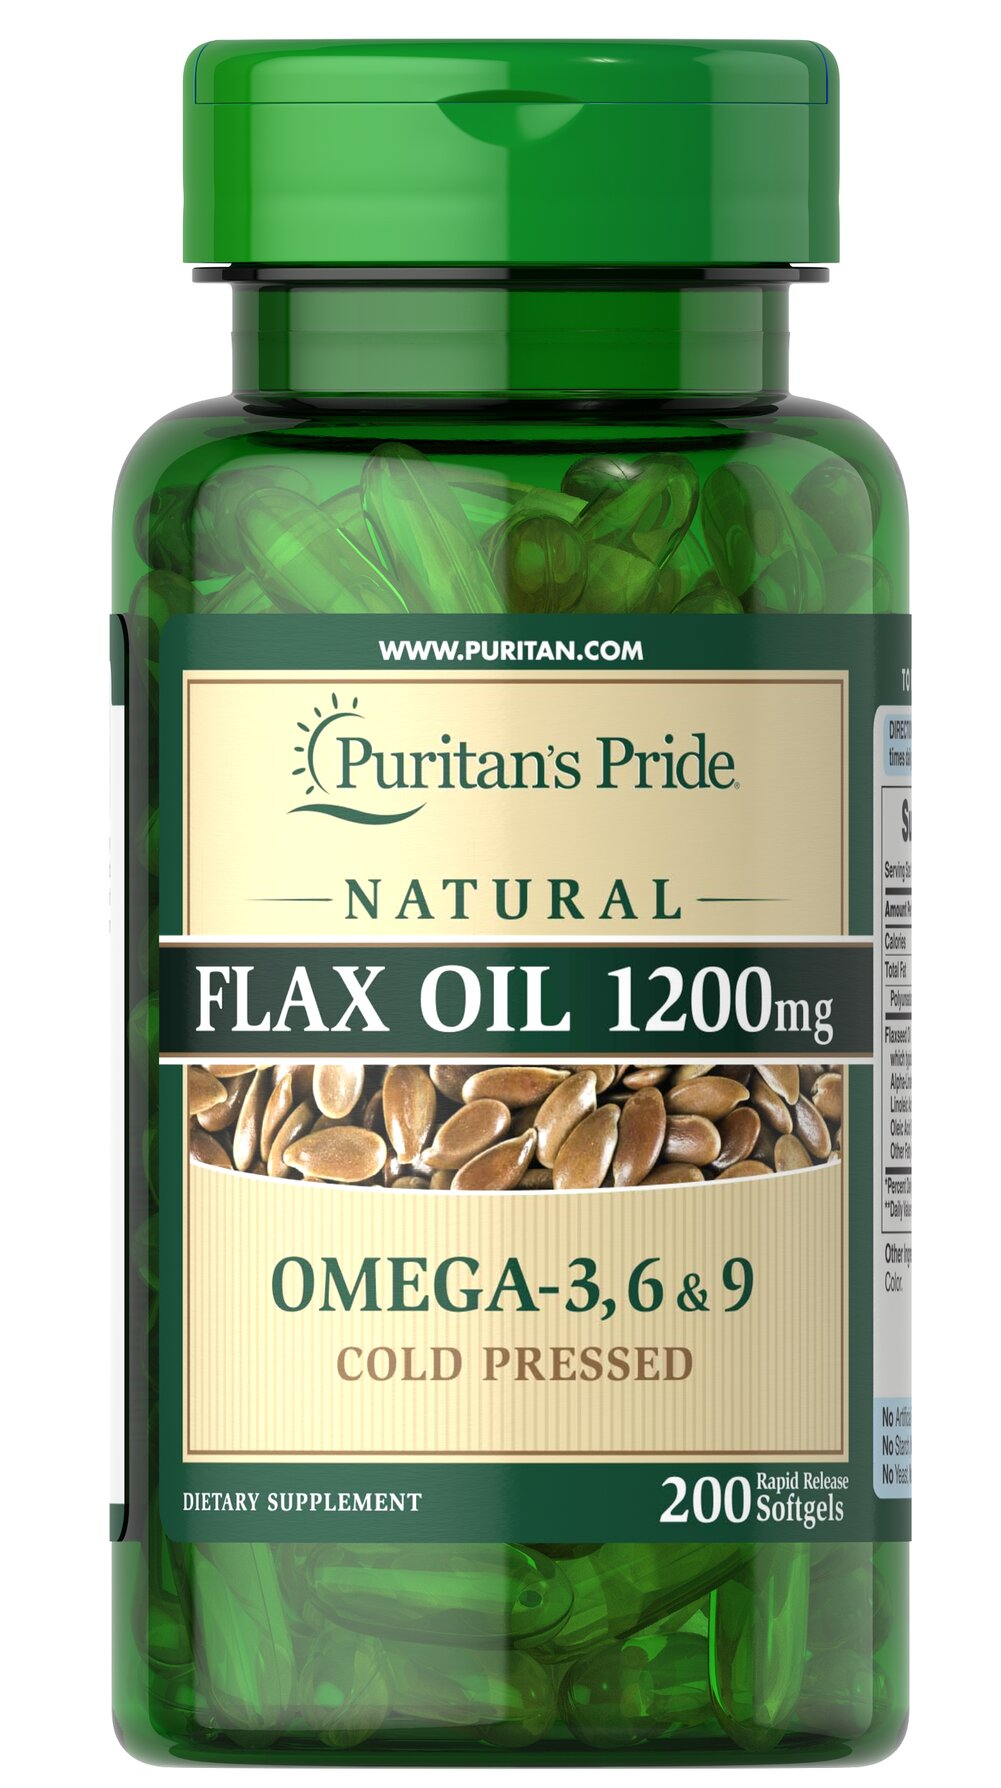 Natural Flax Oil 1200 mg Thumbnail Alternate Bottle View